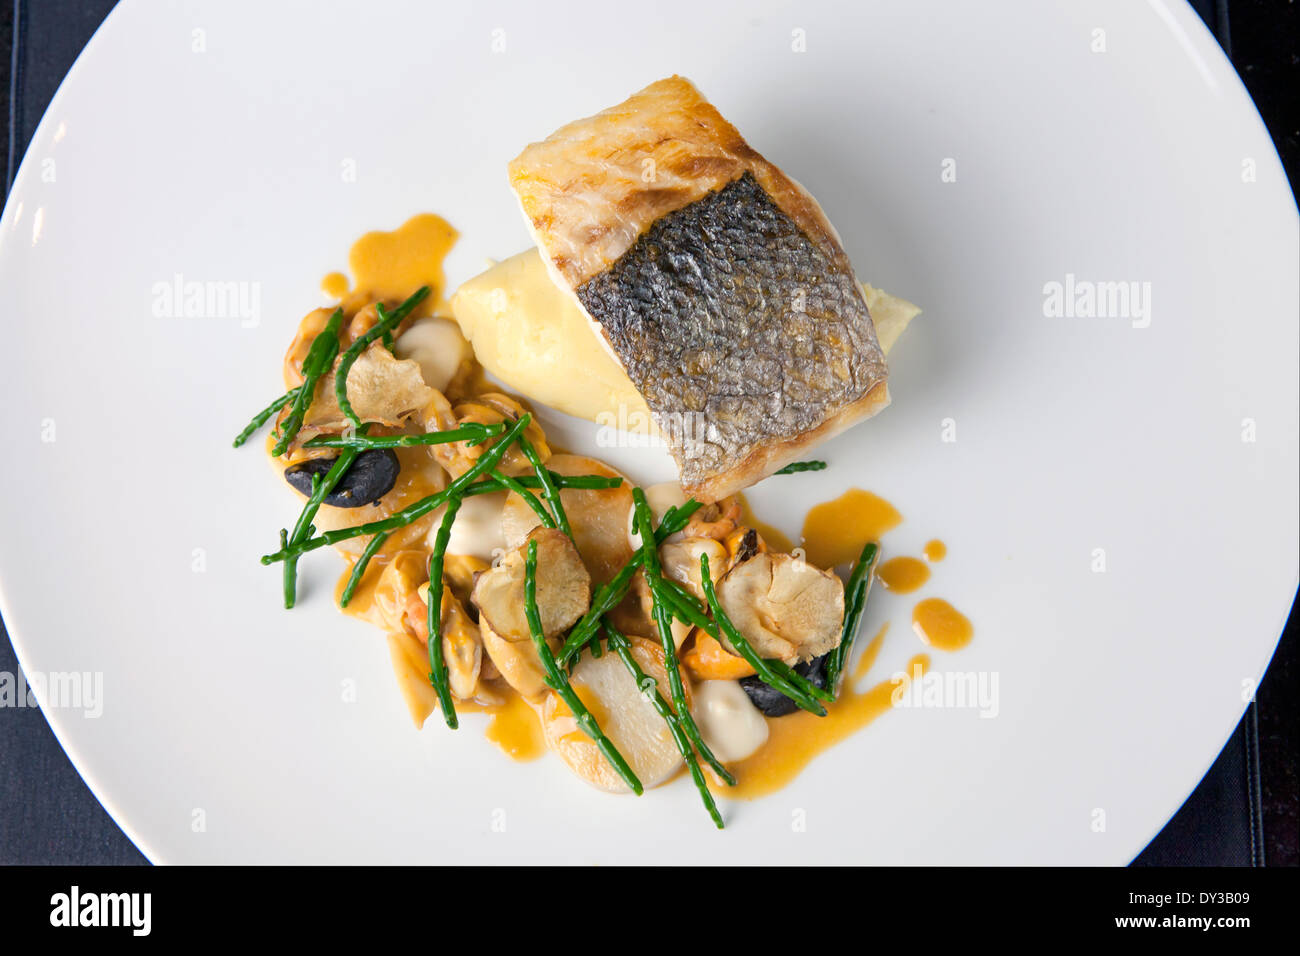 Seared white fish with mash and samphire - Stock Image